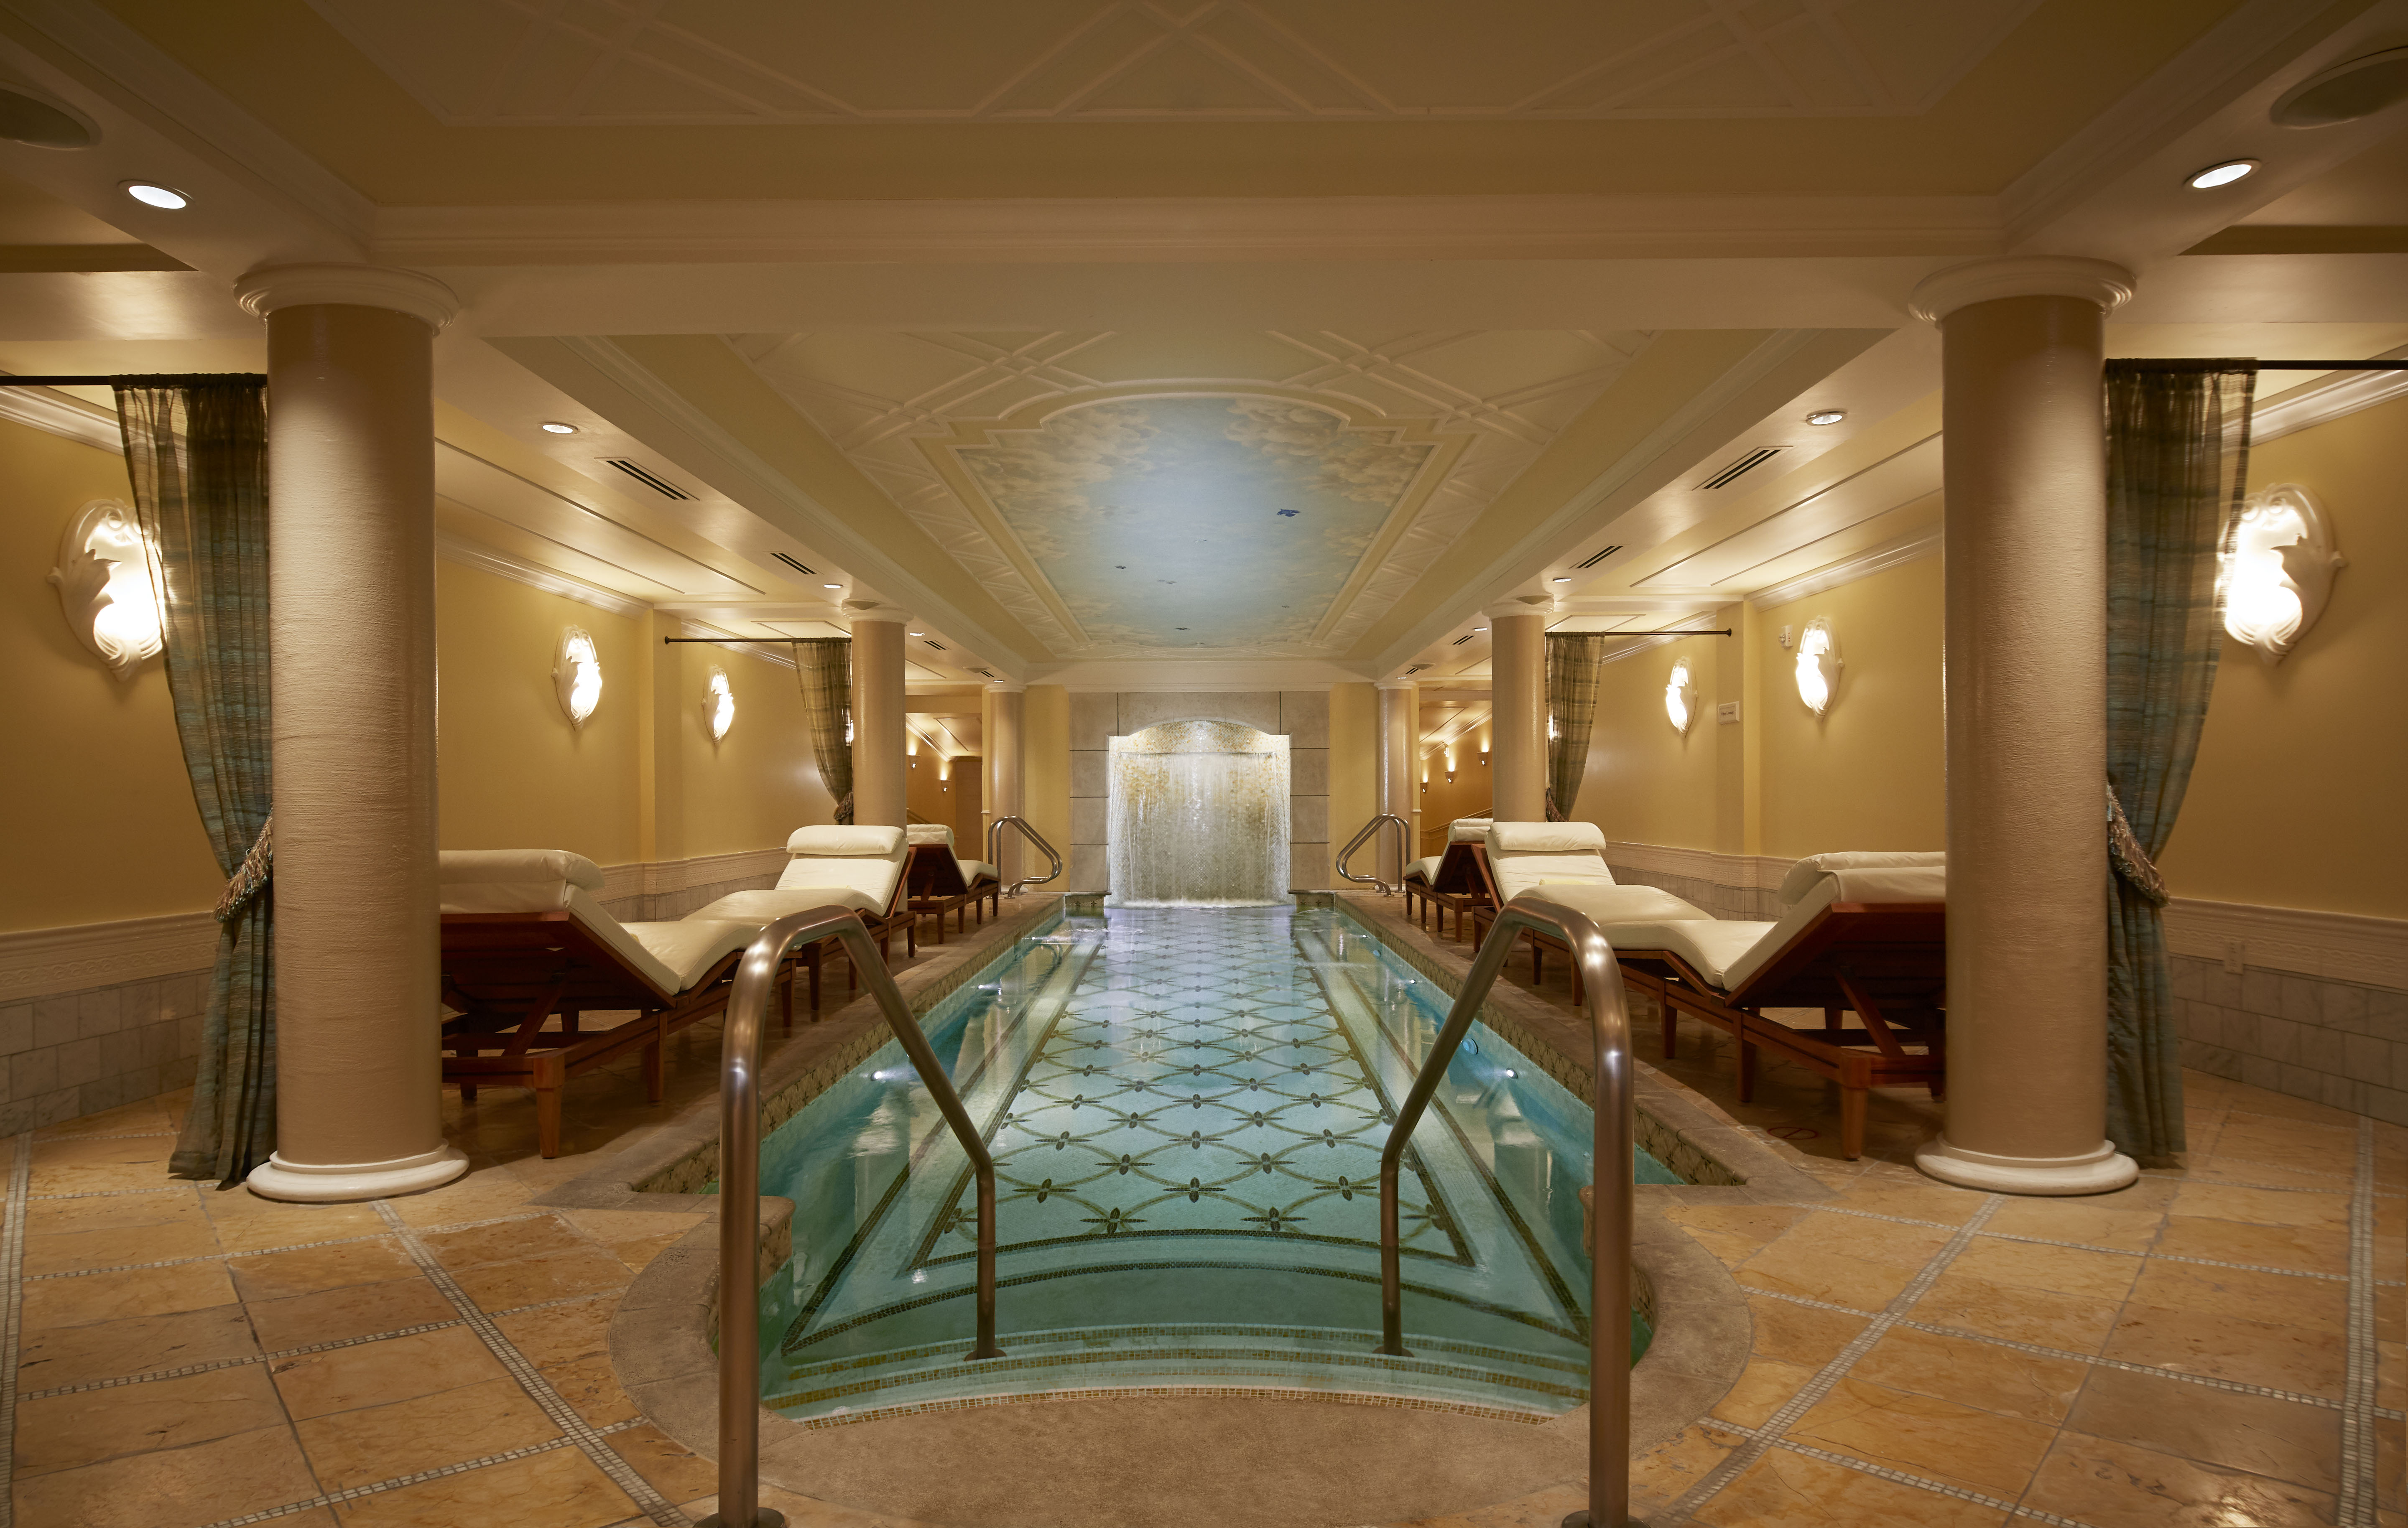 Five Star Automotive >> World-Renowned Kohler Waters Spa Announces 2018 Expansion